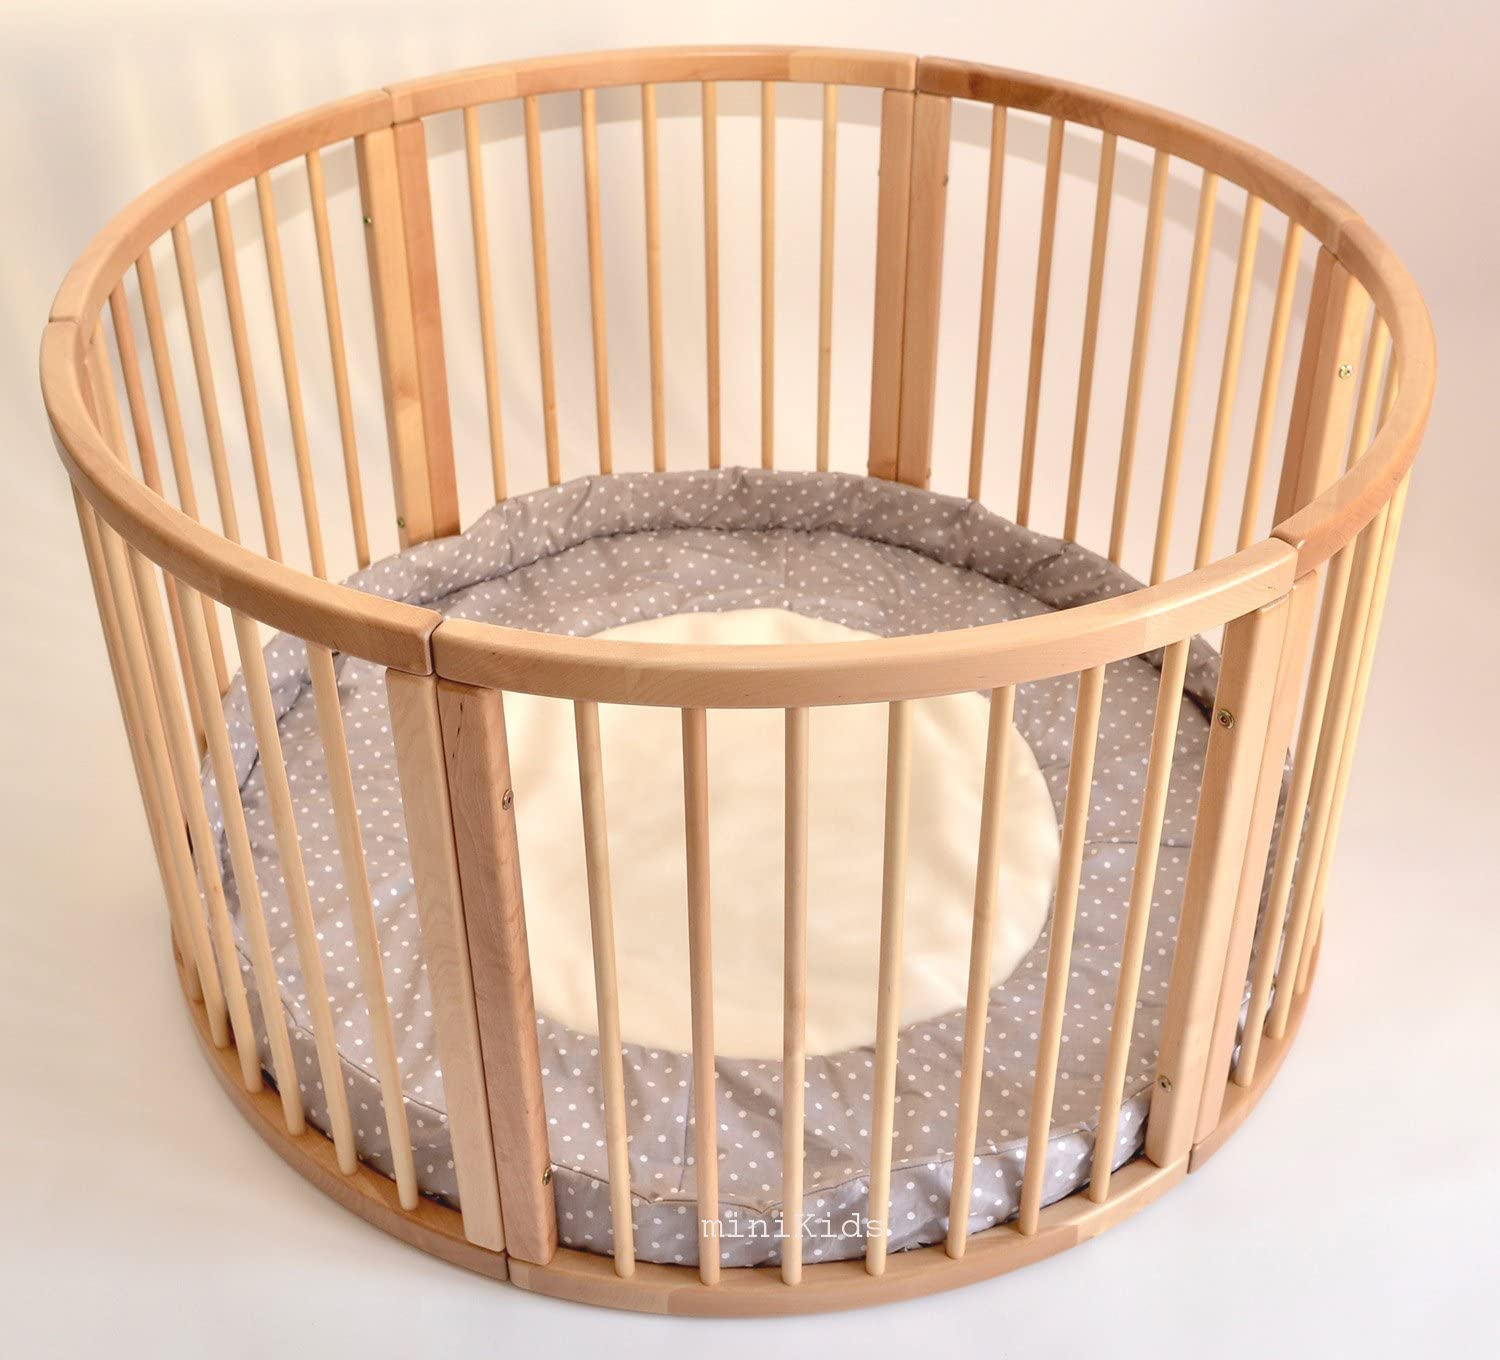 Solid Wood Round Playpen with Soft Layer Diameter 120 cm